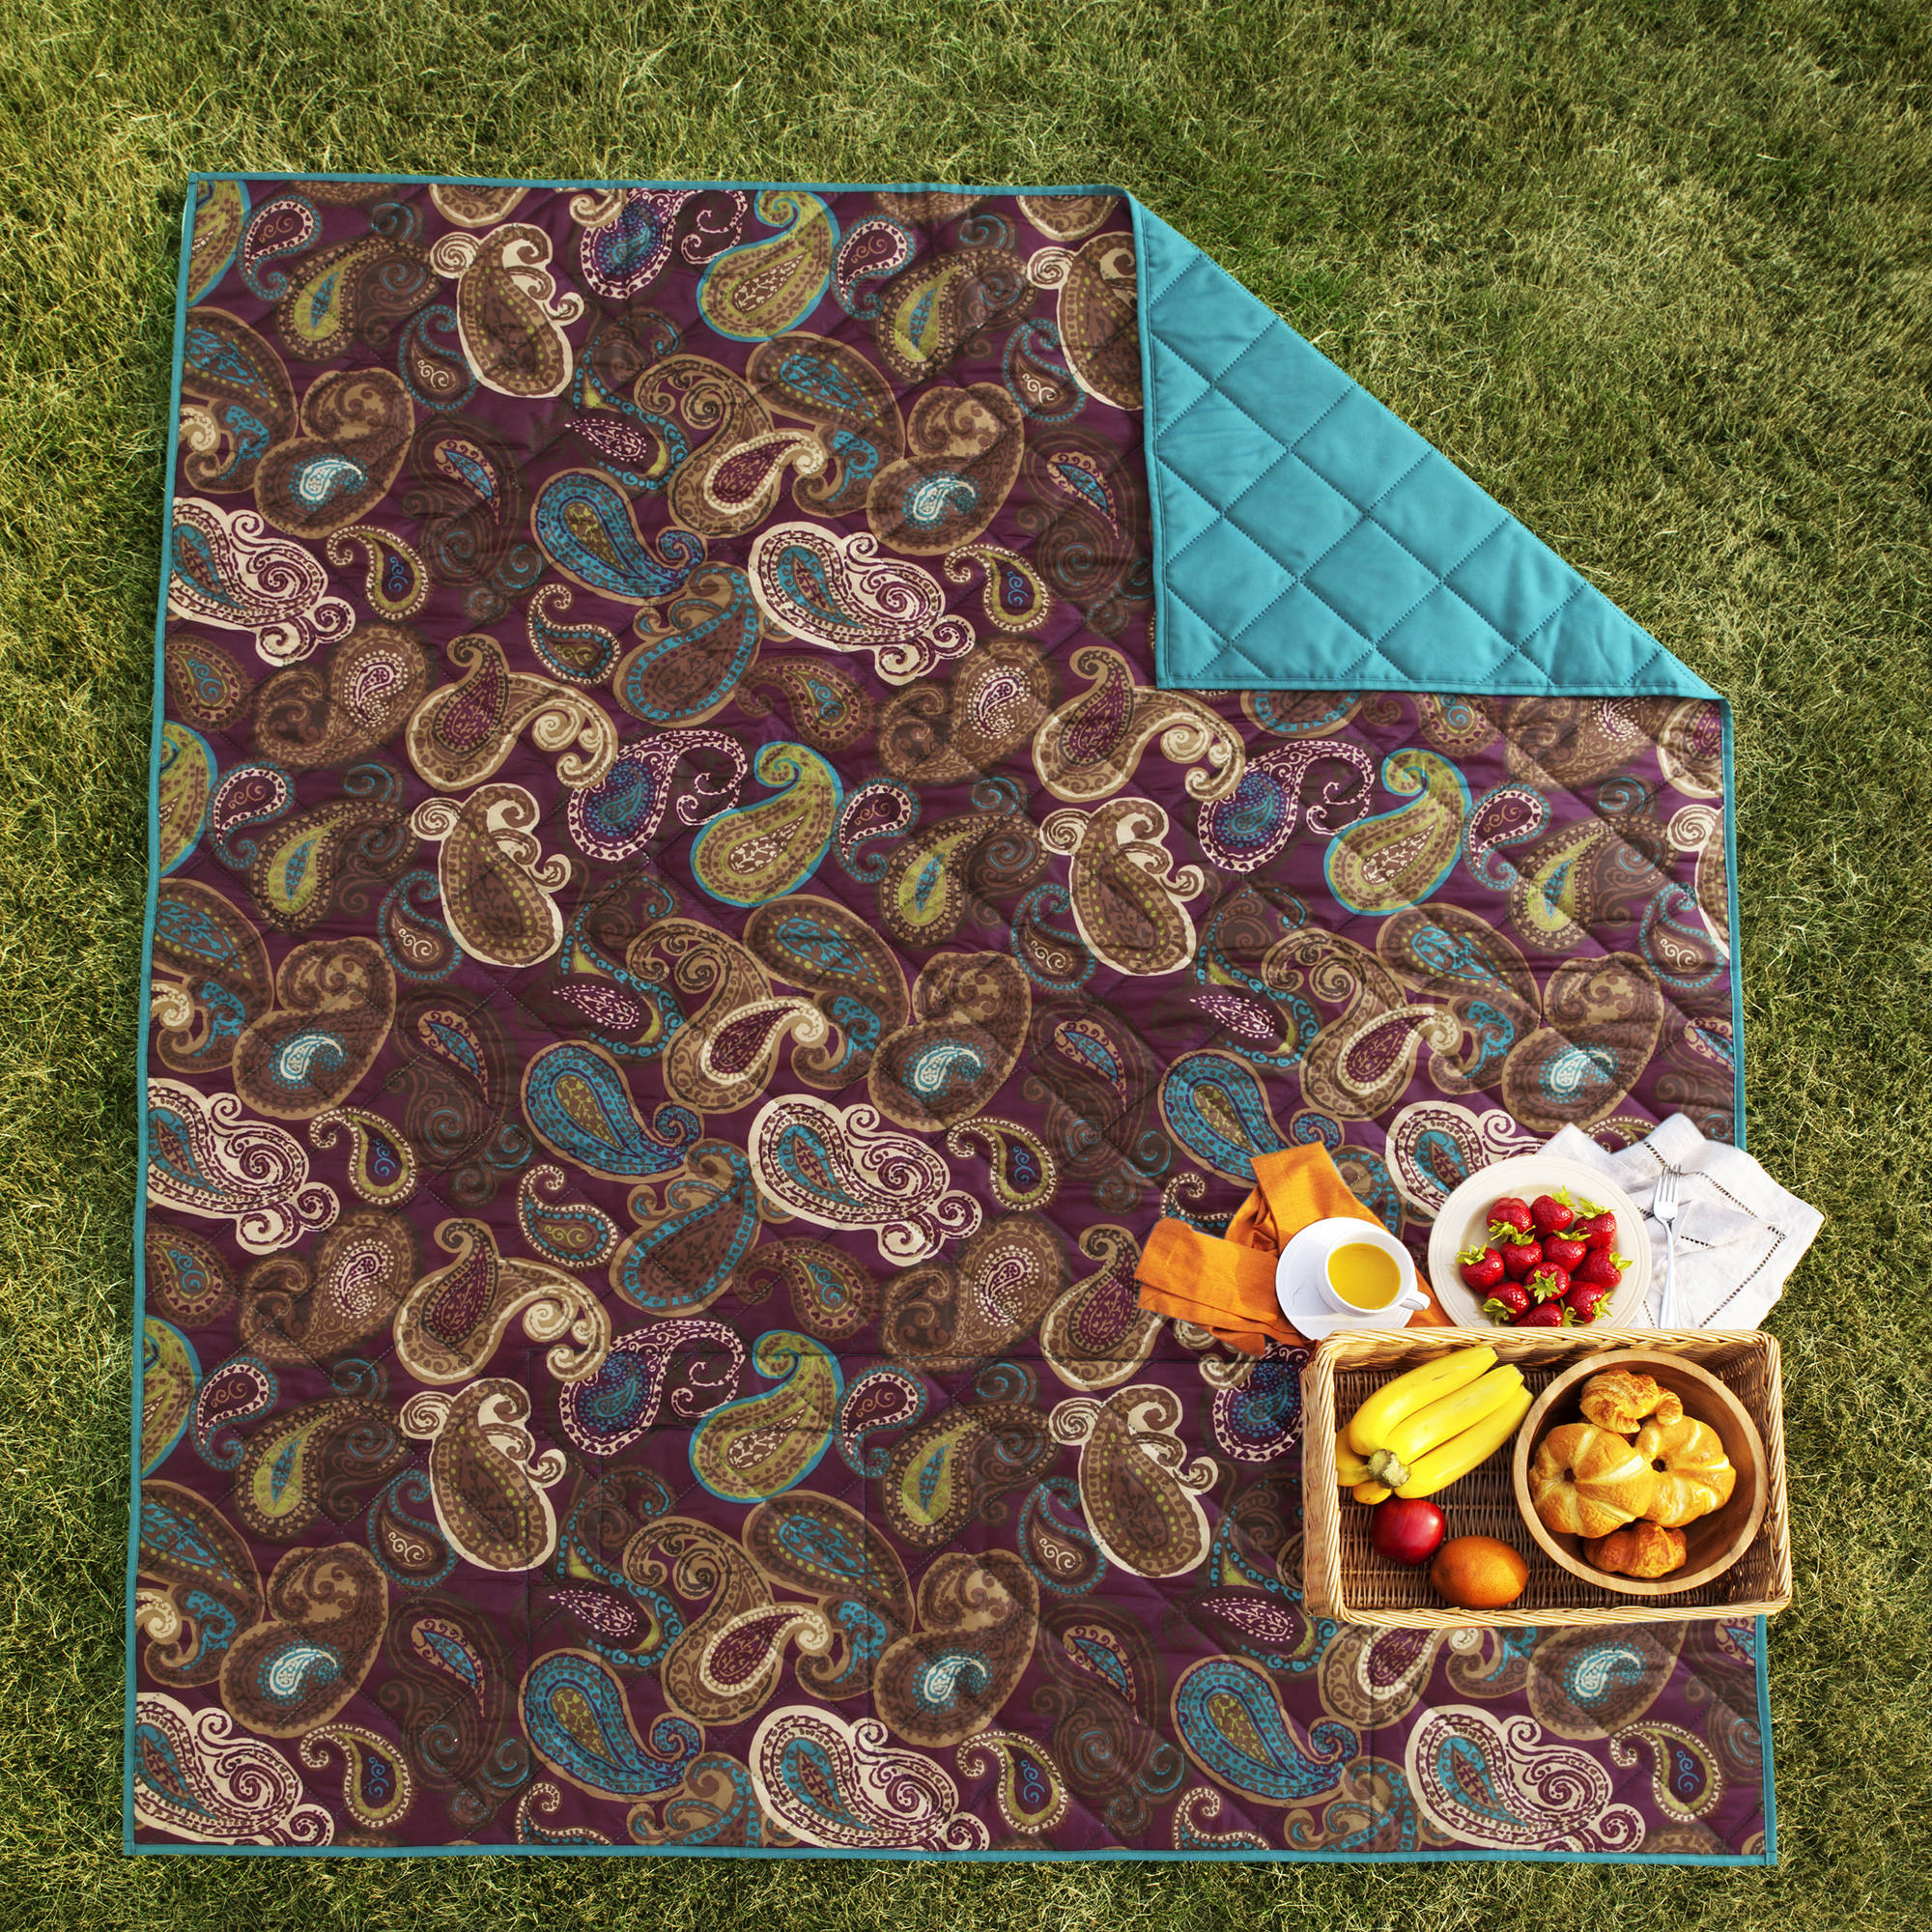 Mainstays Outdoor Blanket